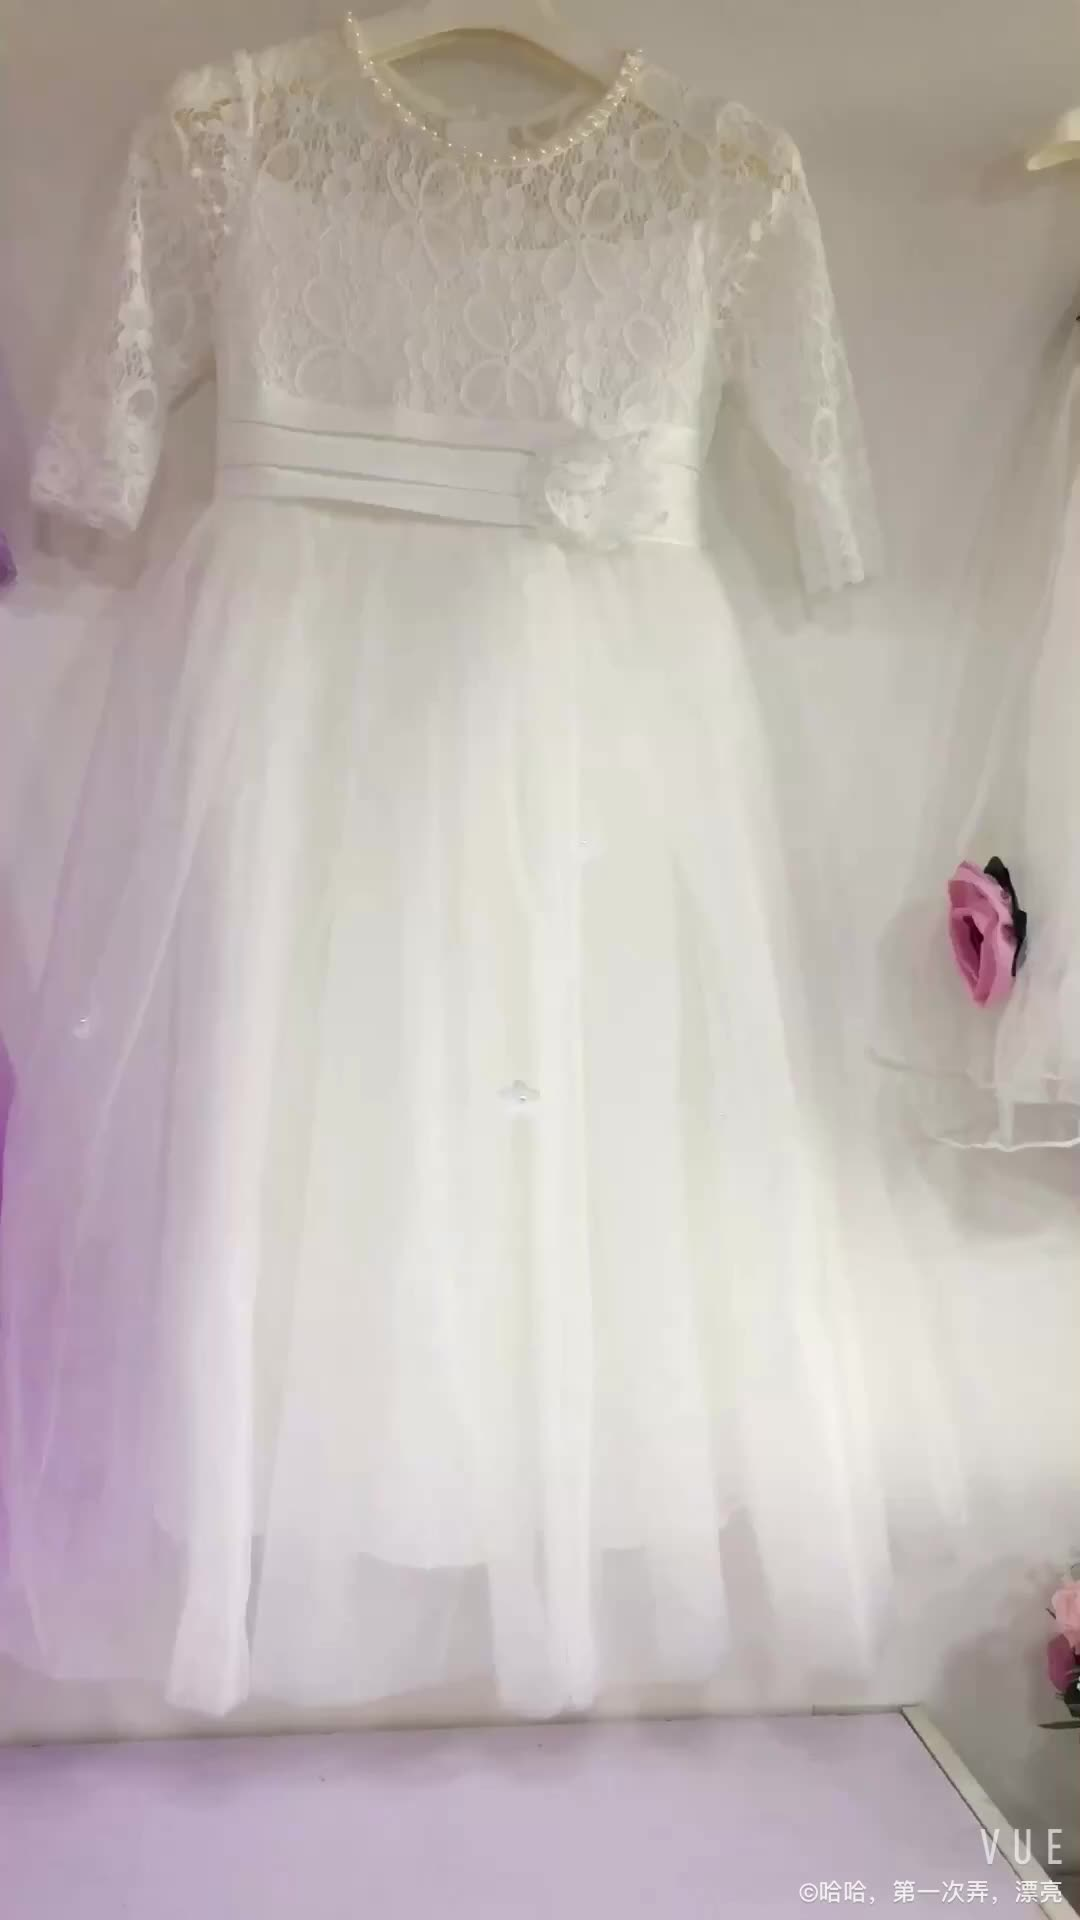 Baby Girl Names Images Bridal Pictures Of Latest Gown Design Wedding ...